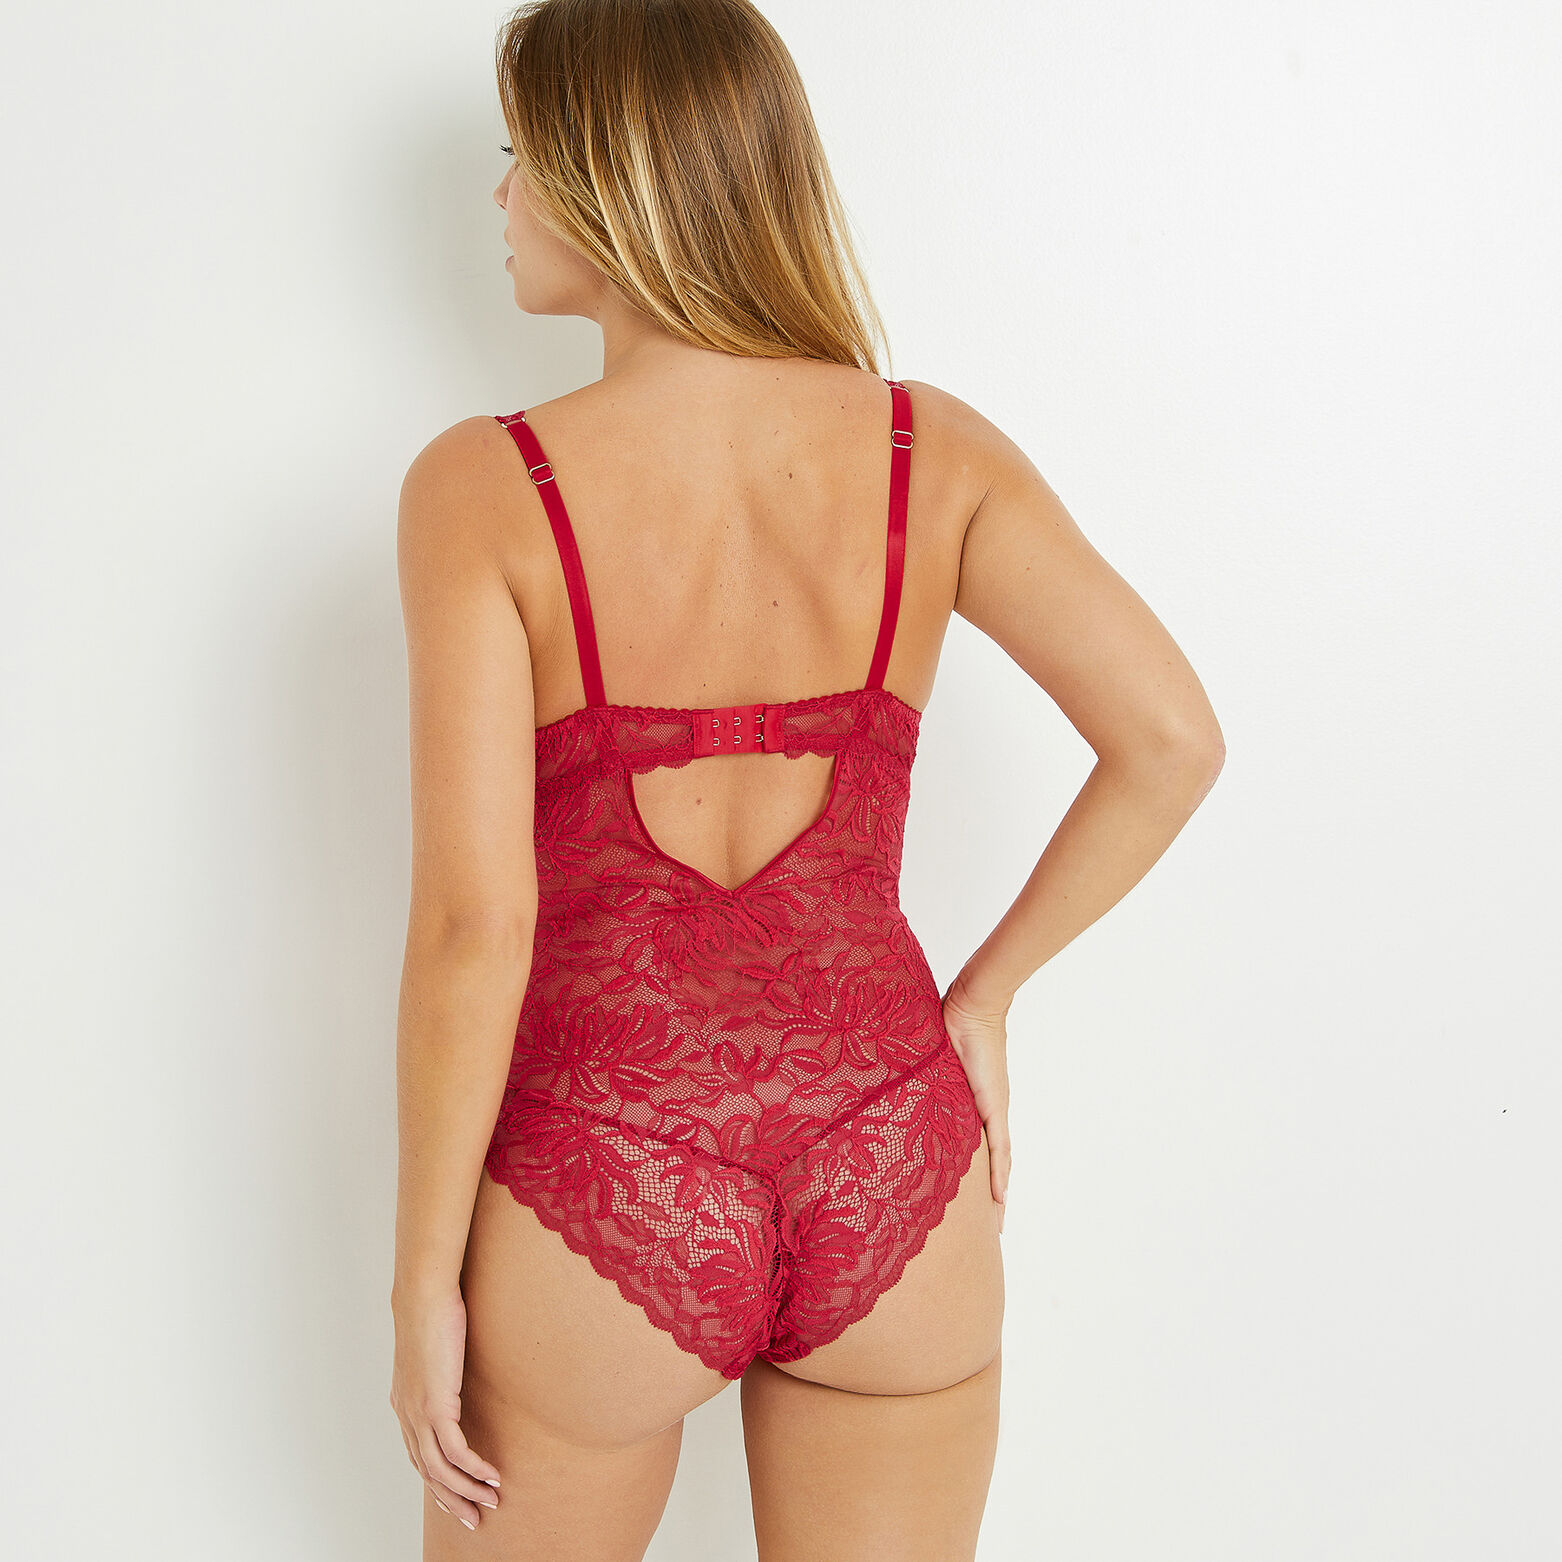 PERCY BODY ARMATURES ROUGE